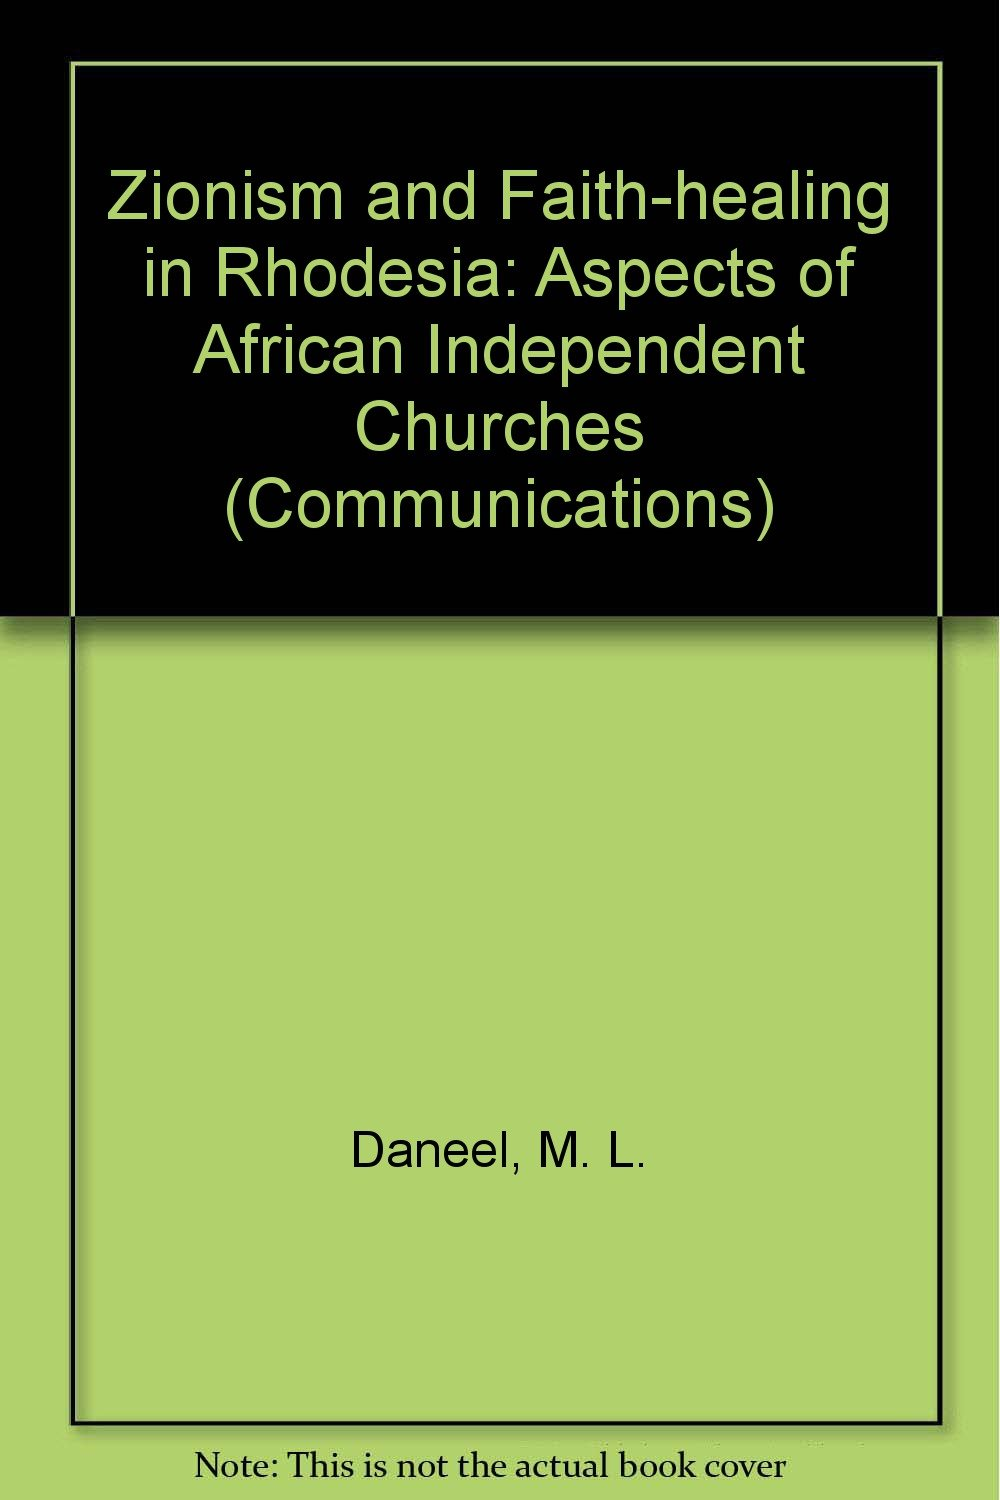 Zionism and Faith-healing in Rhodesia: Aspects of African Independent Churches (Communications)